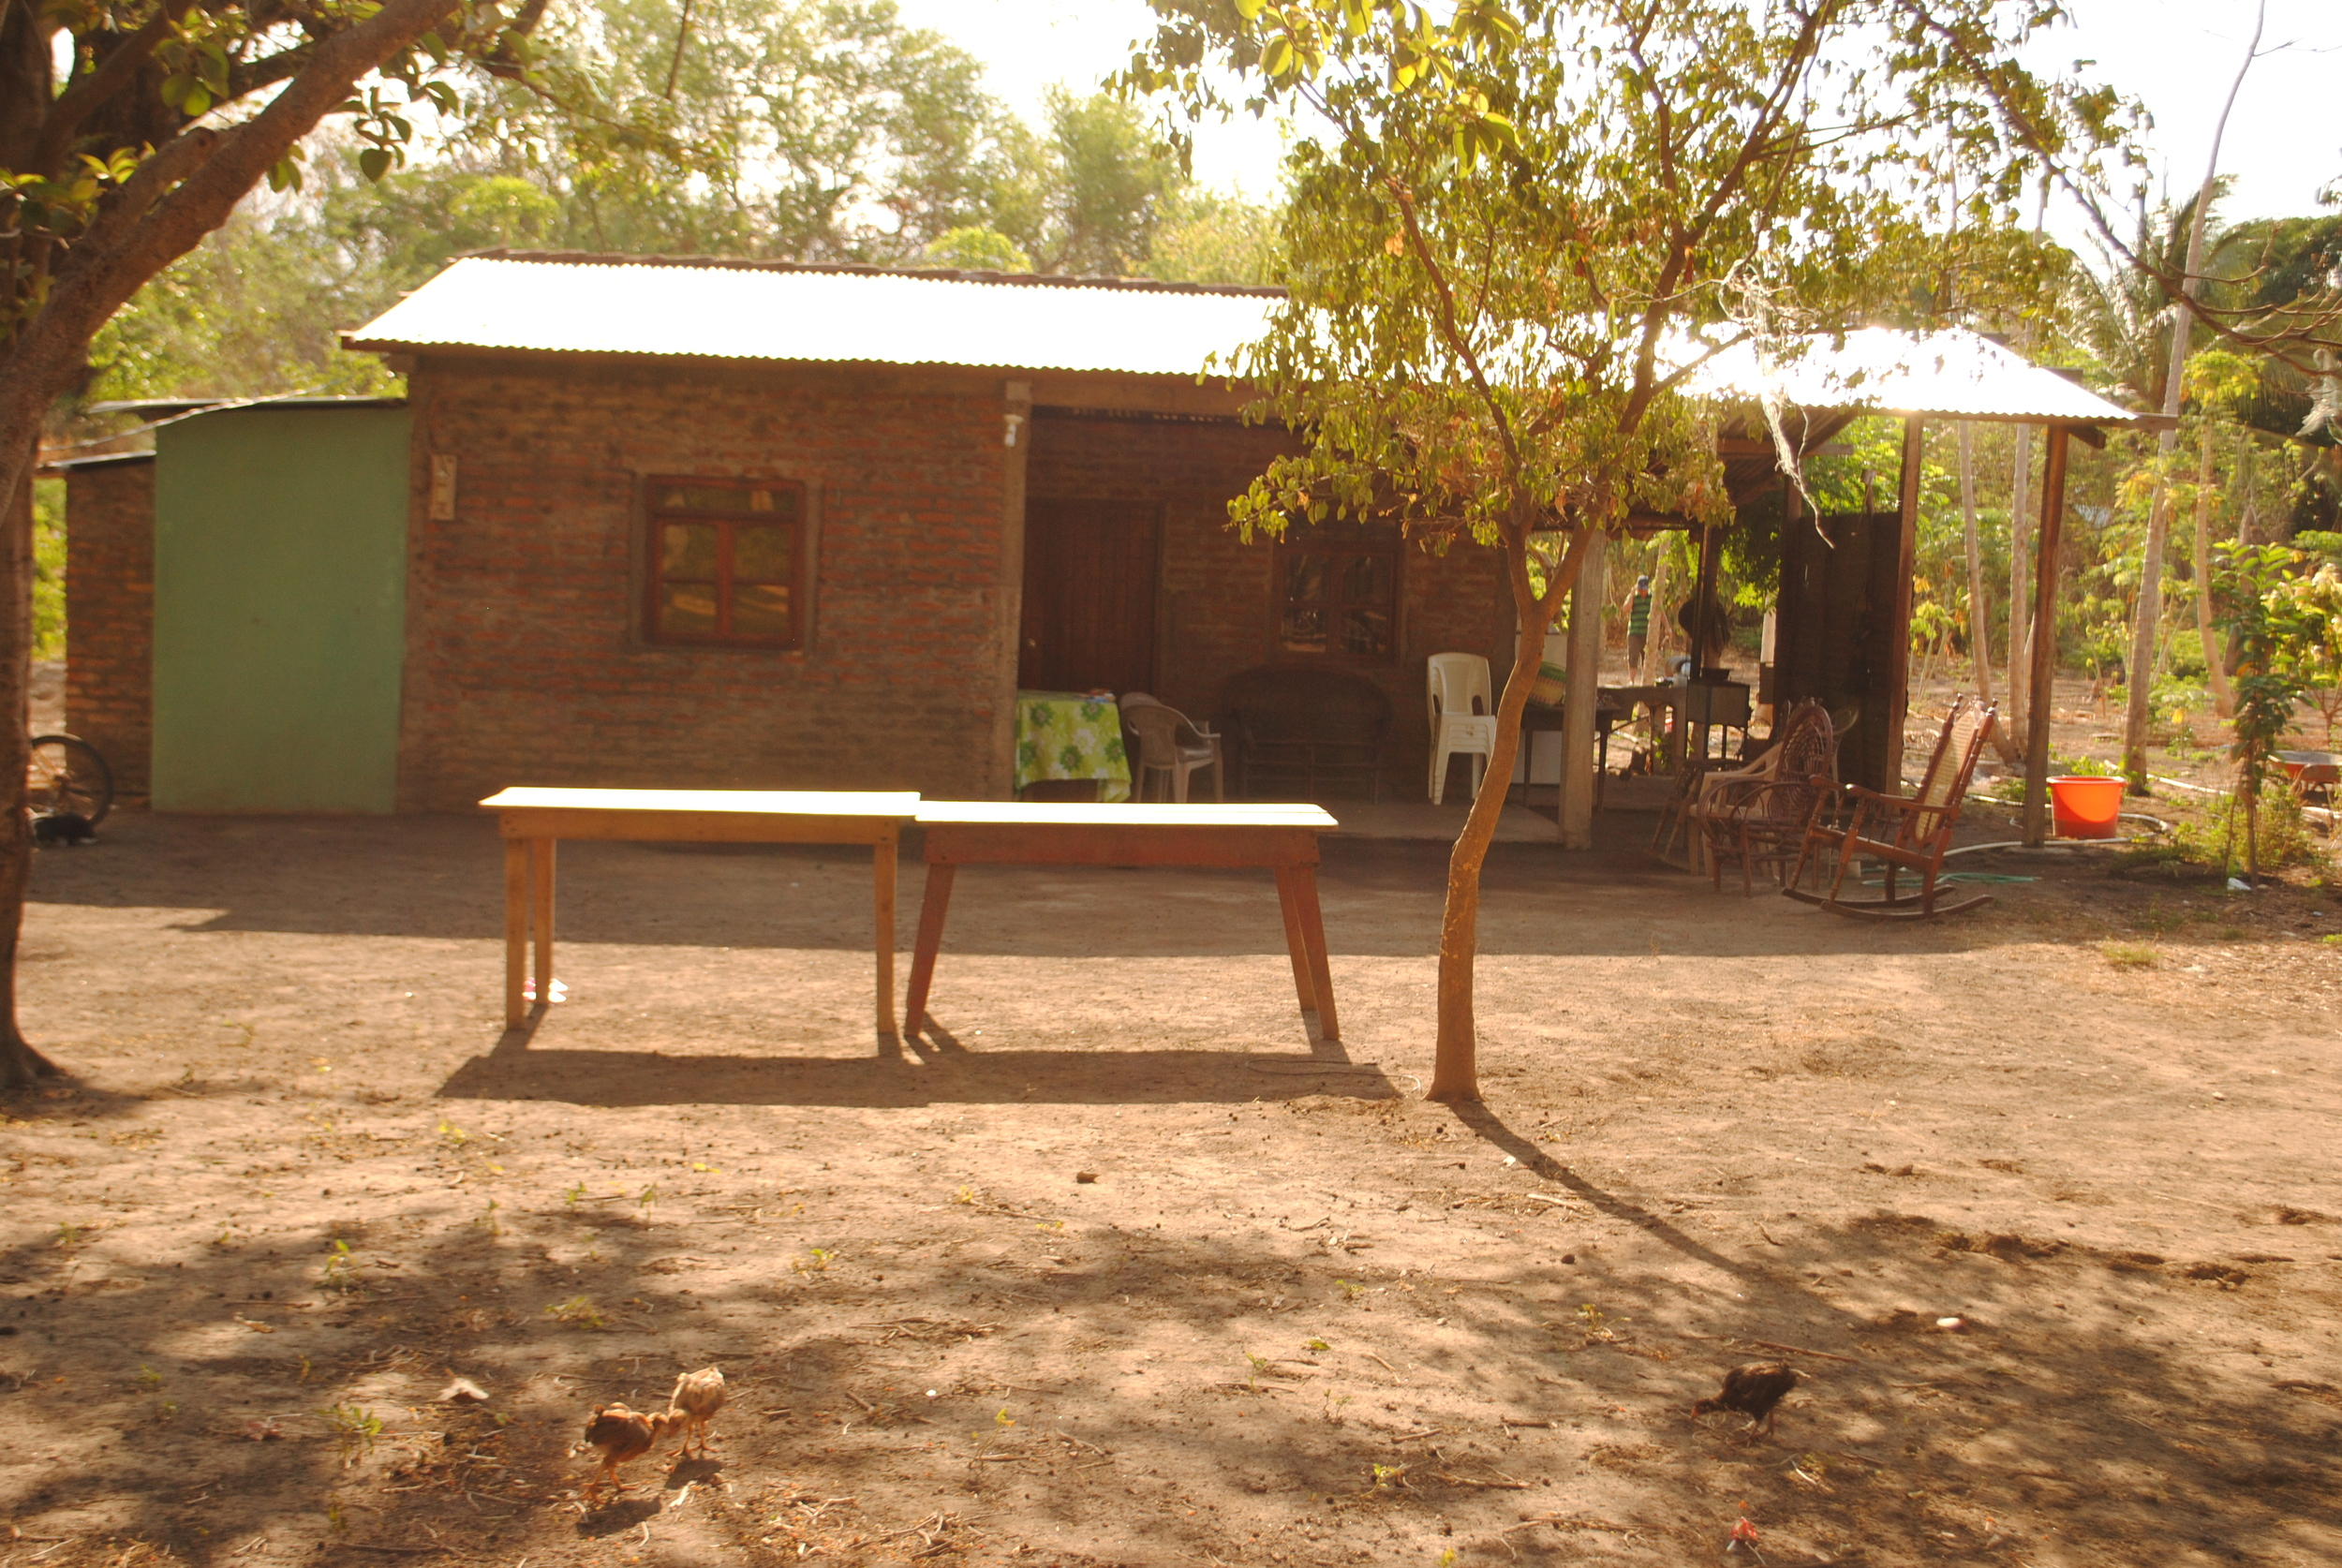 Our very humbling homestay in Ometepe - a lovely experience